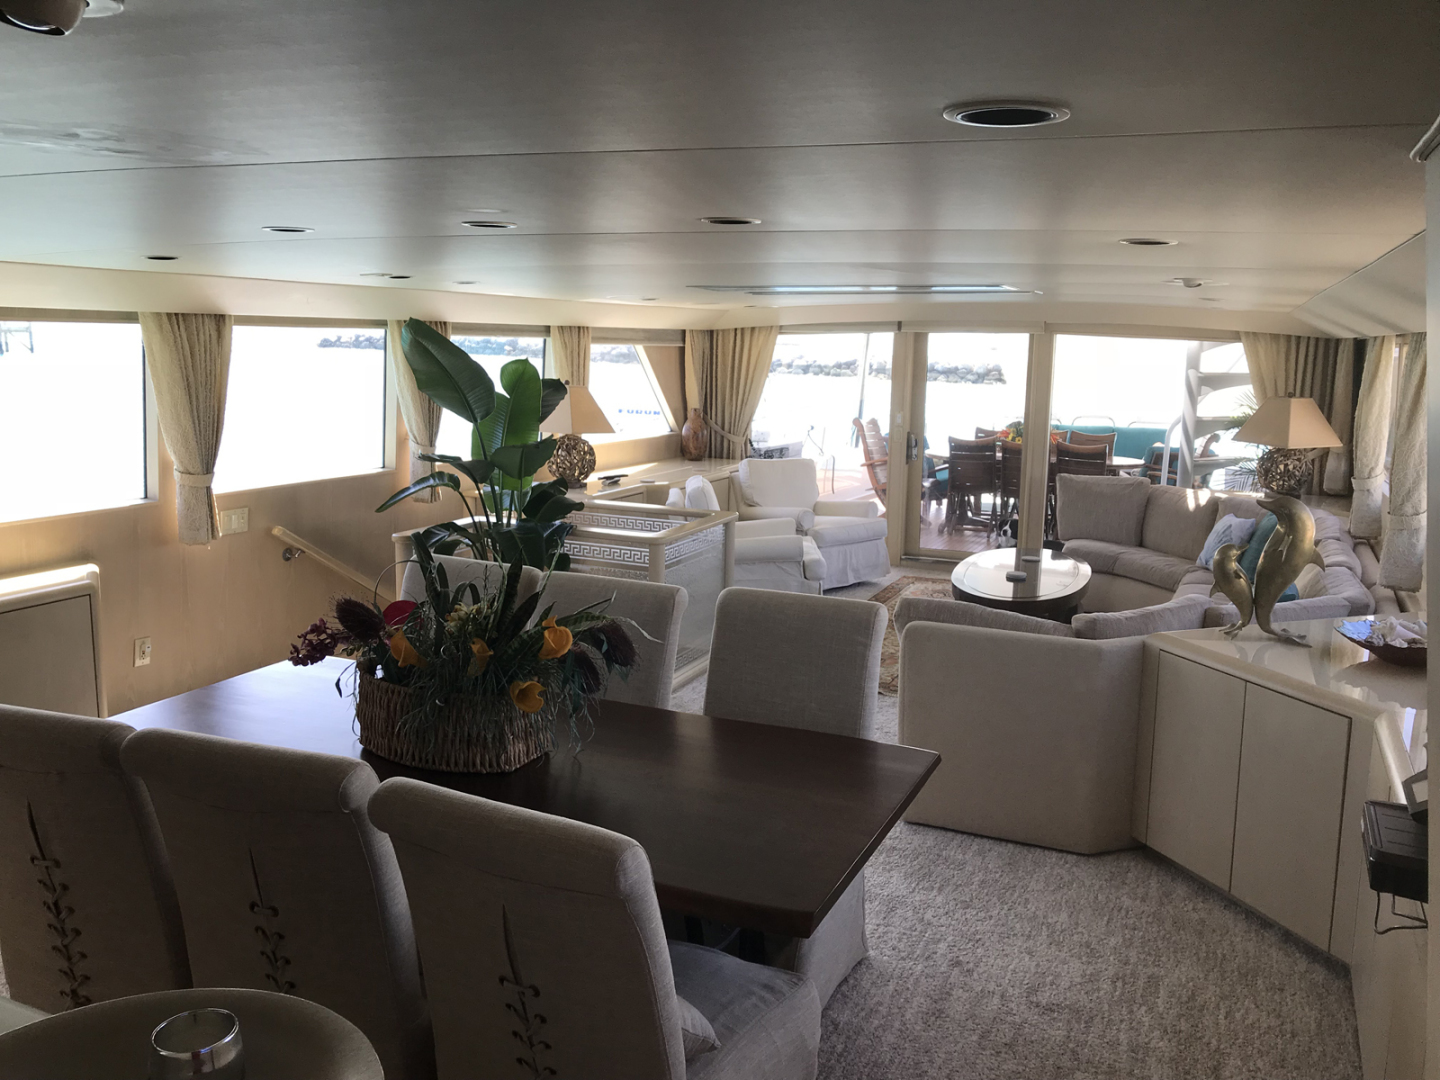 Broward-Custom Extended 1990-MON SHERI Fort Lauderdale-Florida-United States-Dining area looking to starboard-1515025   Thumbnail